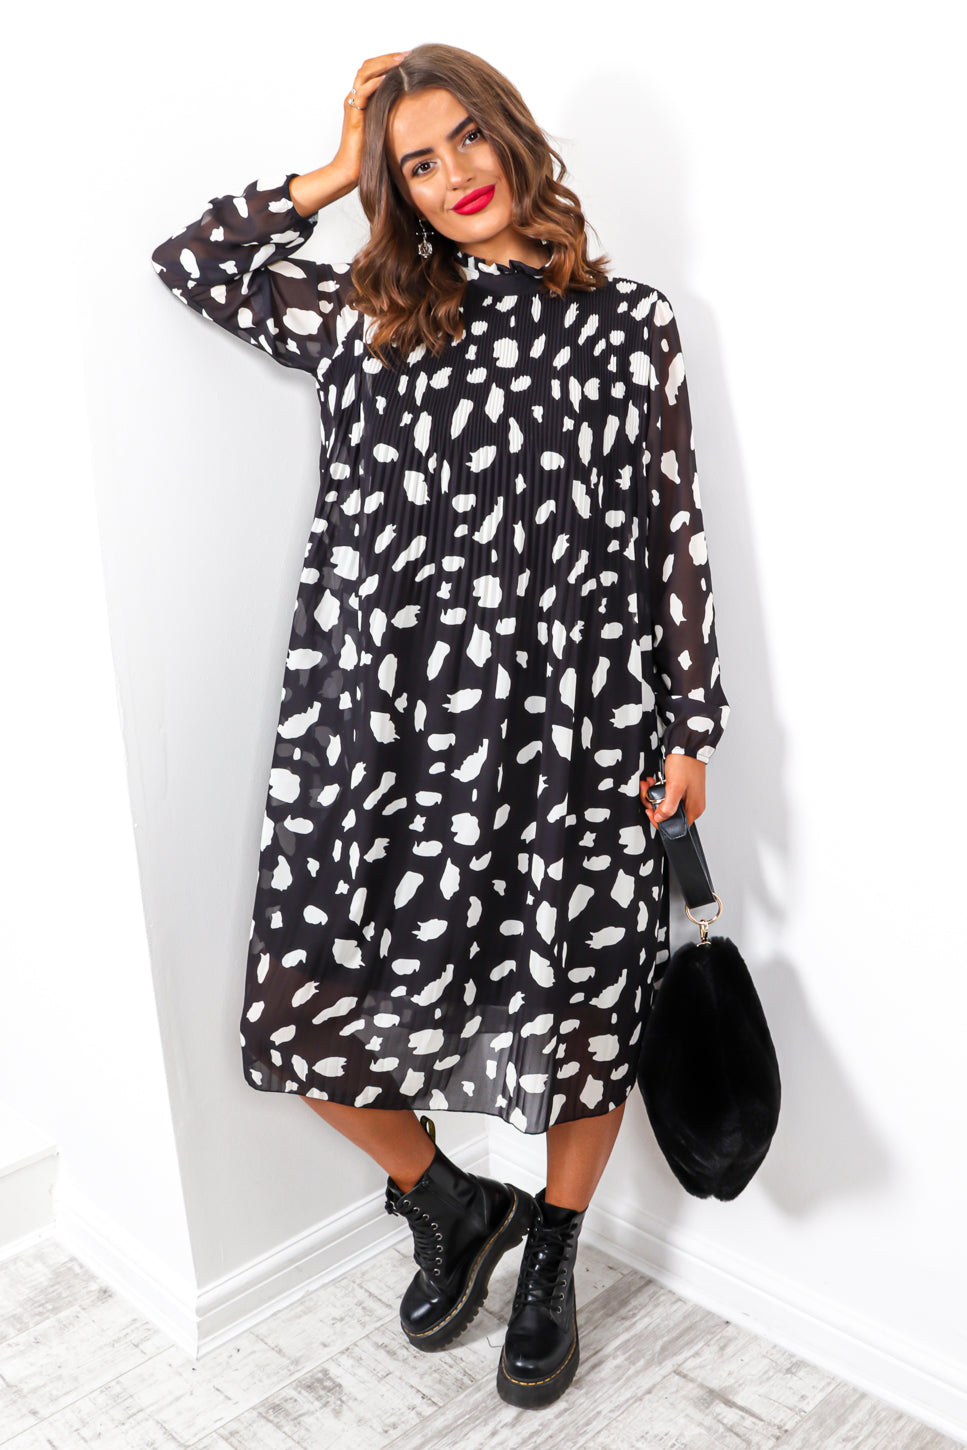 Feeling Feisty - Black White Print Pleated Midi Dress